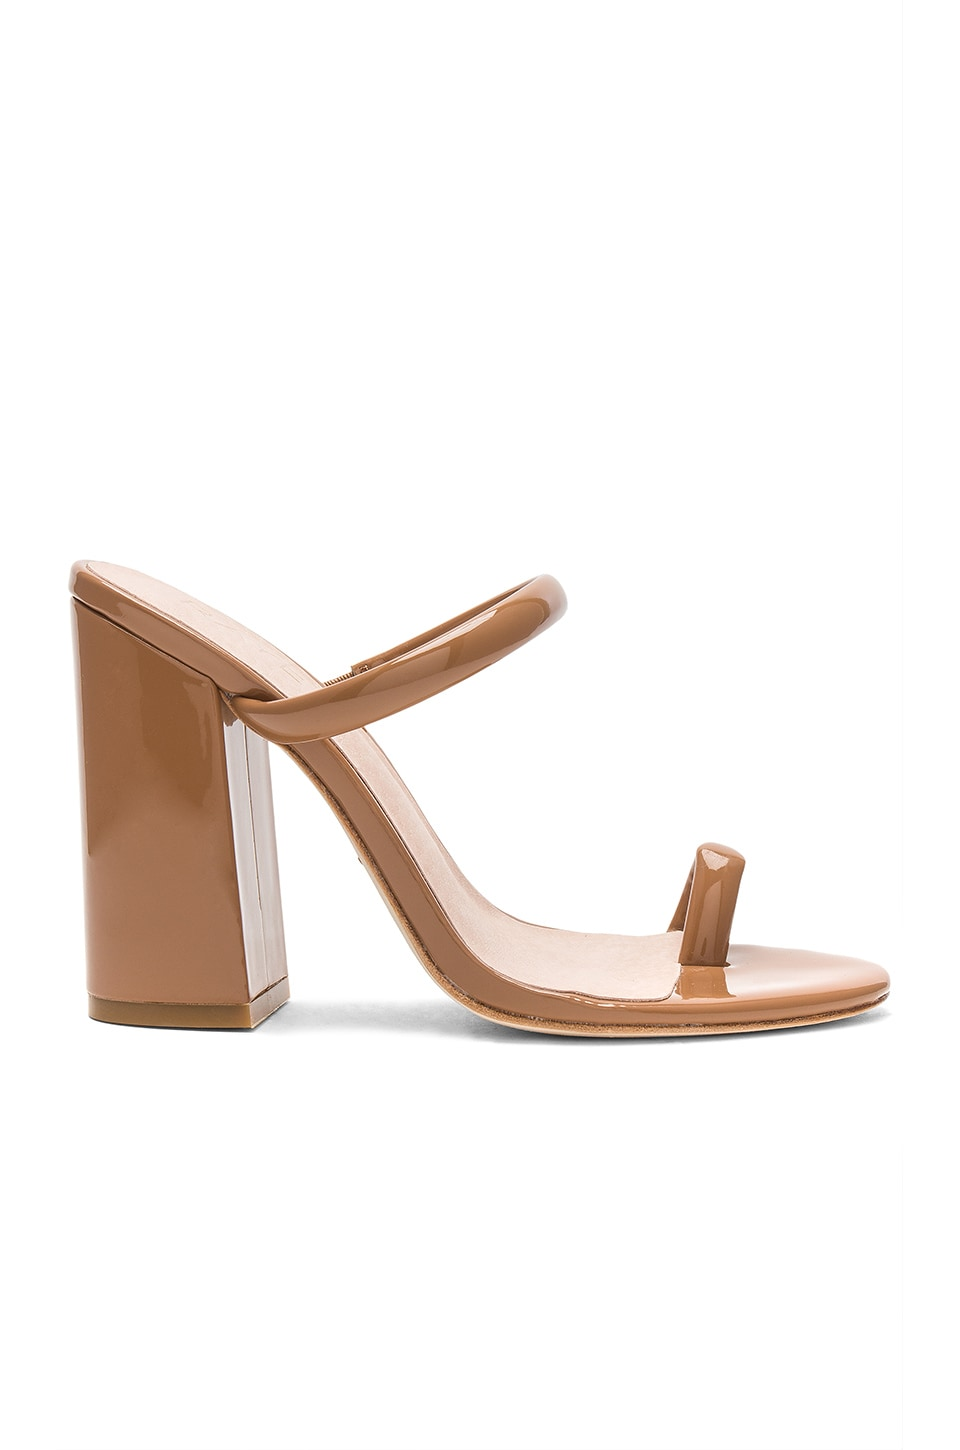 RAYE Brindis Heel in Dark Tan